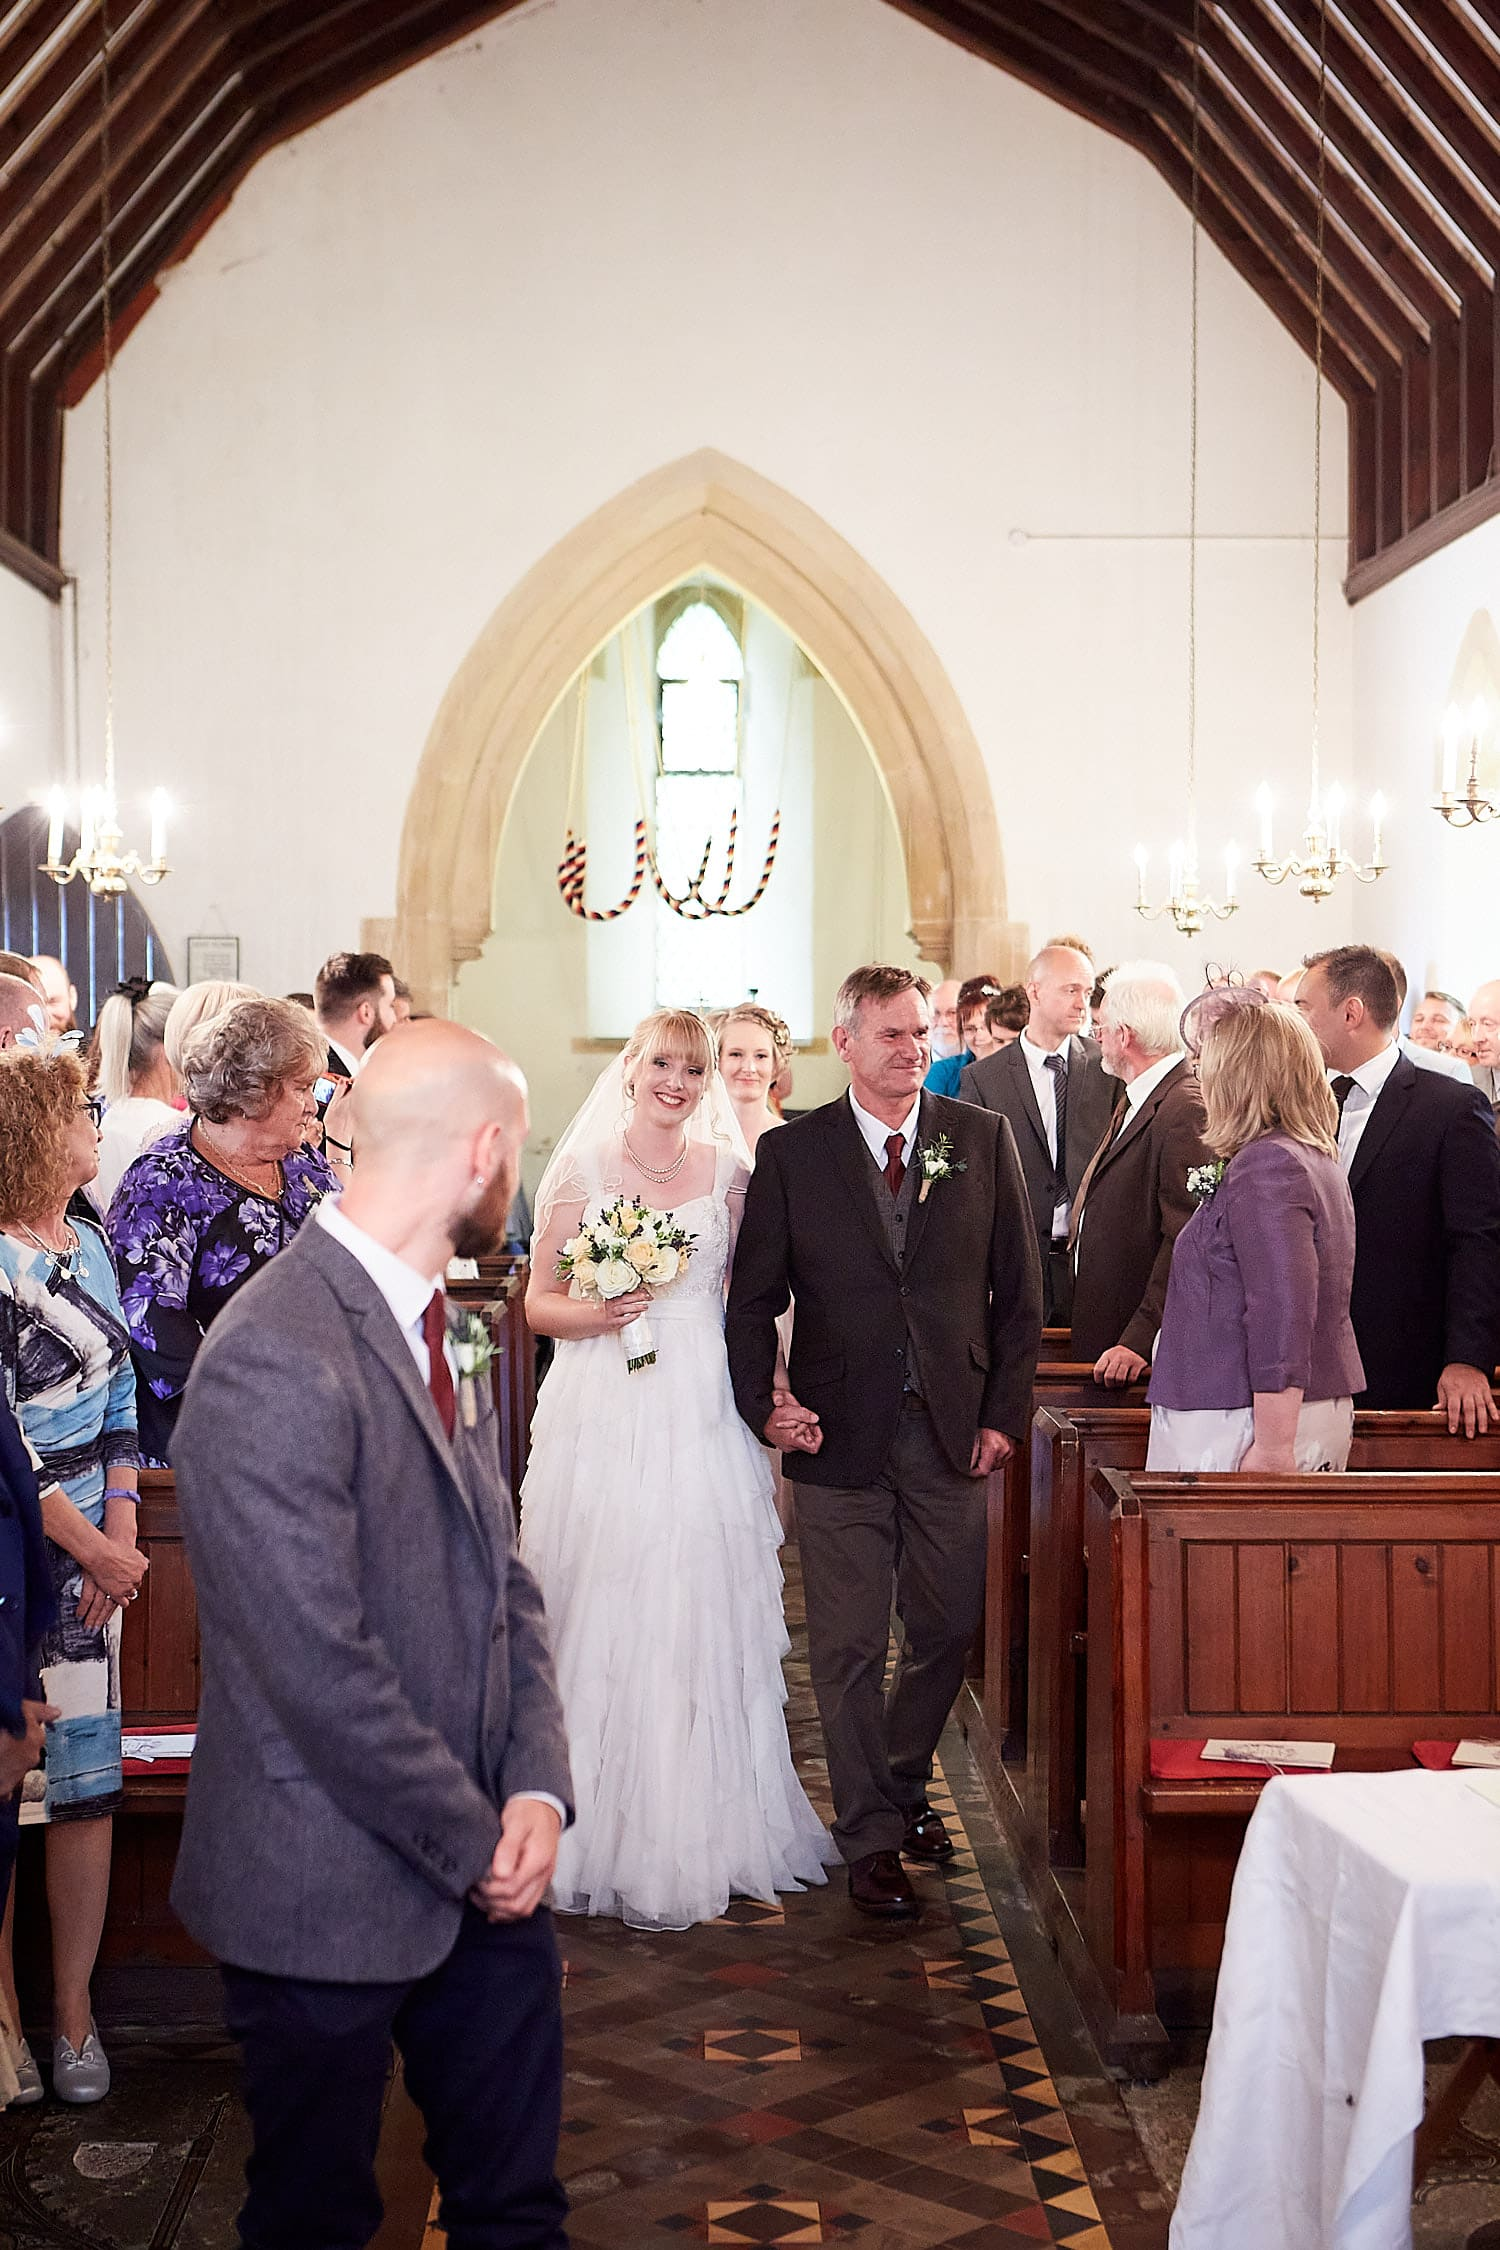 A bride smiles as the groom sees her for the first time at the church